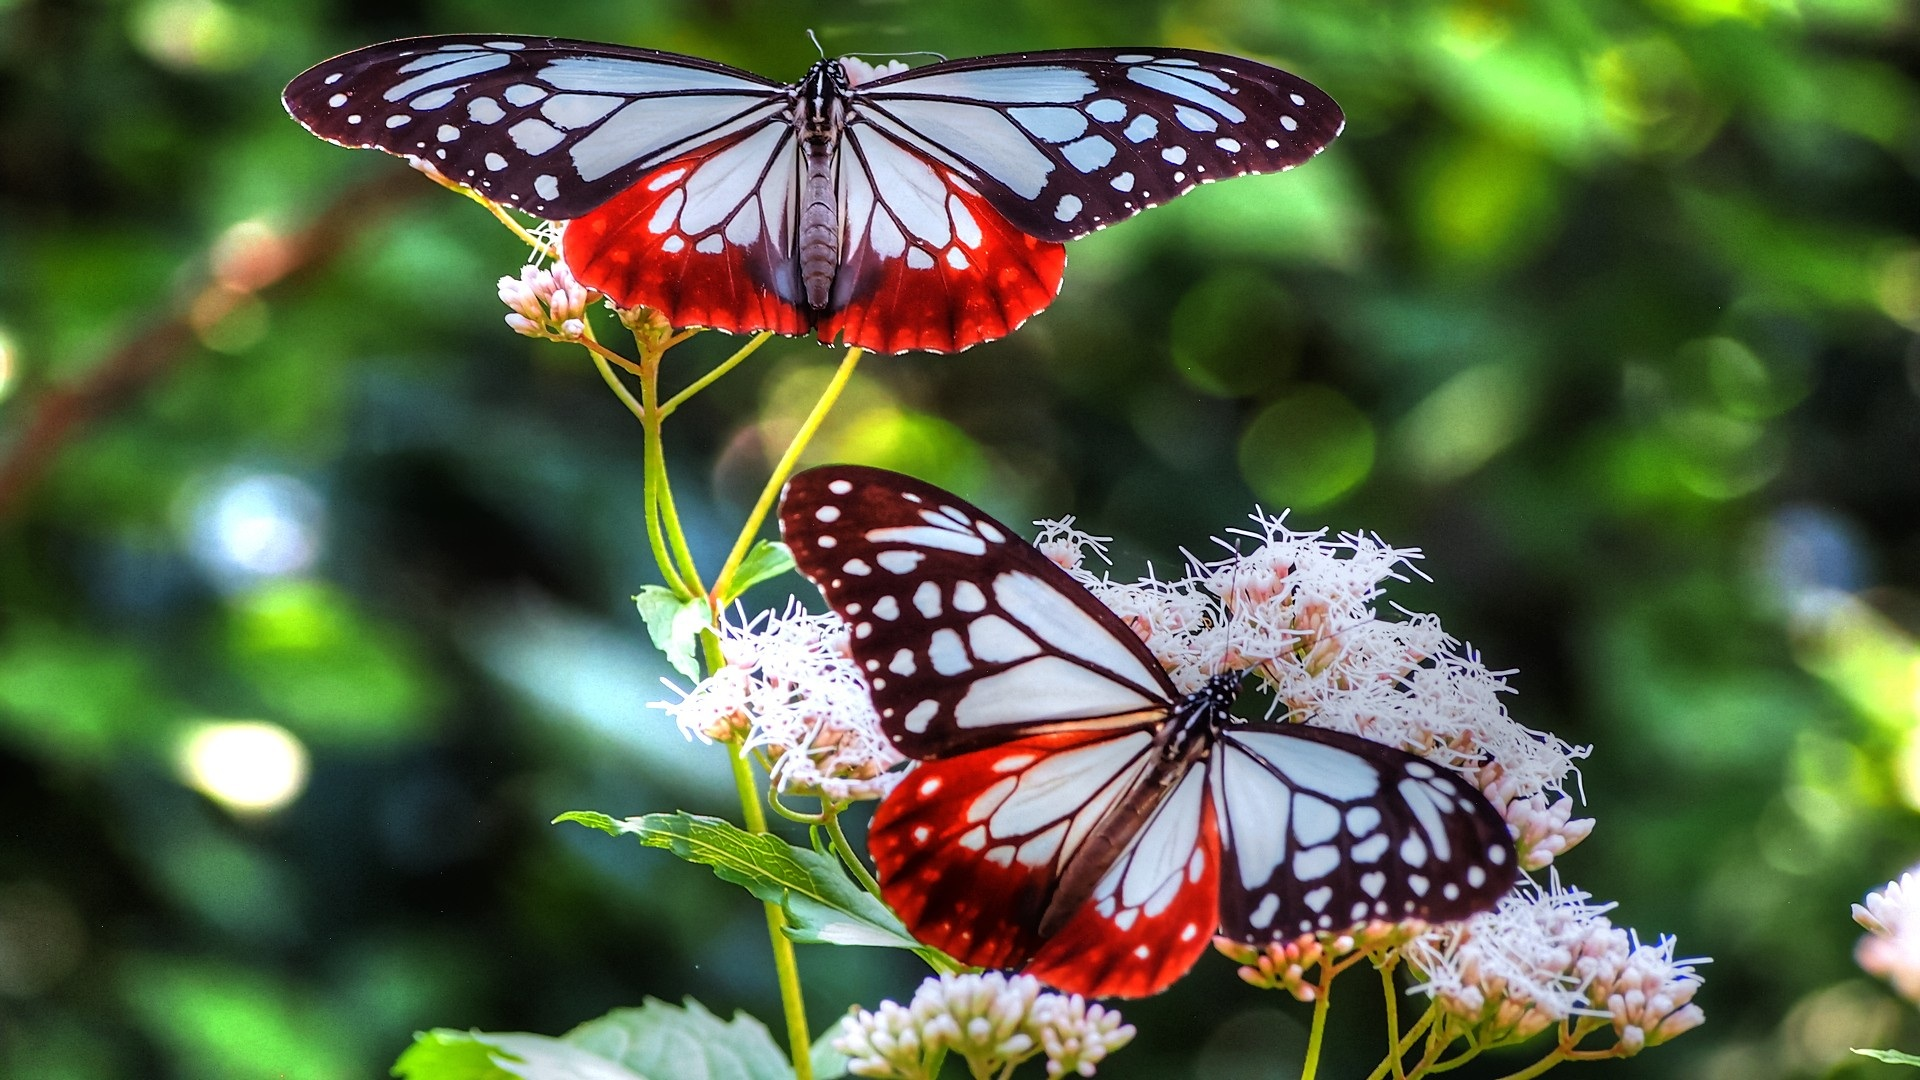 images of flowers and butterflies backgrounds